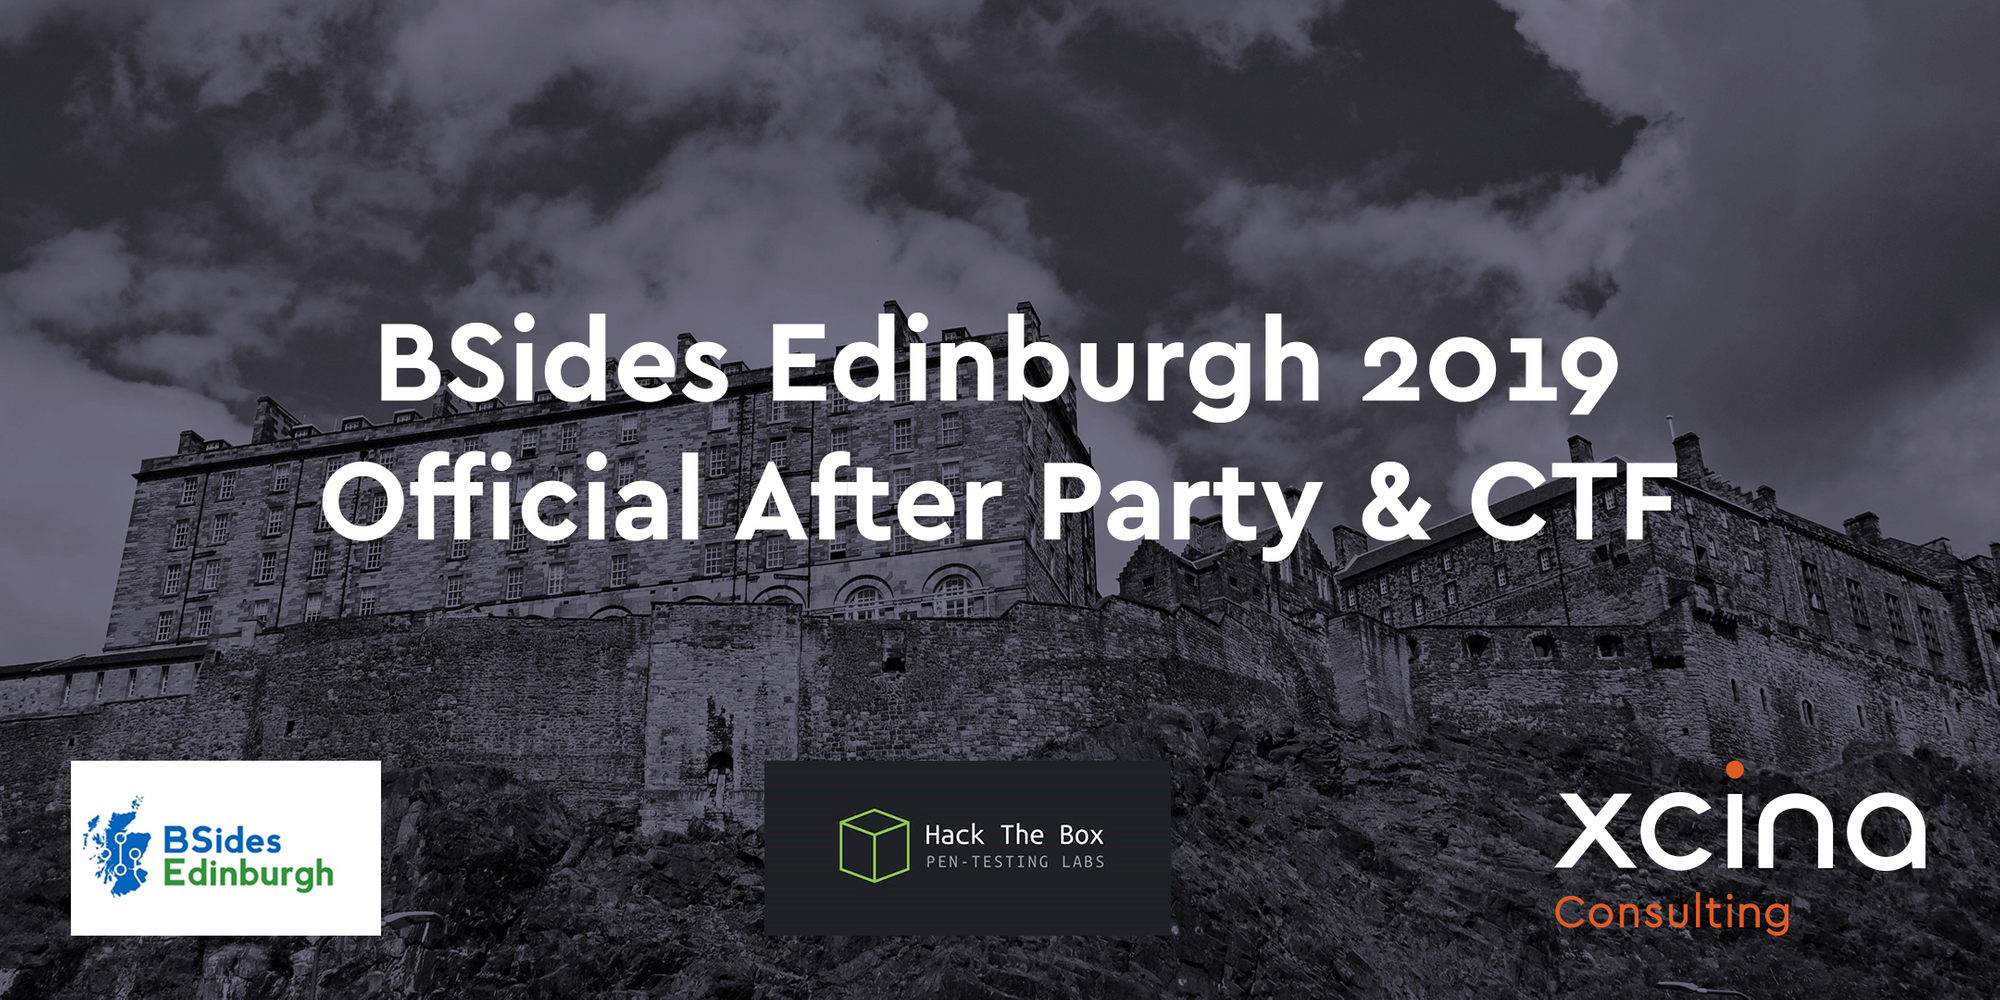 BSides Edinburgh 2019 - Official After Party & CTF